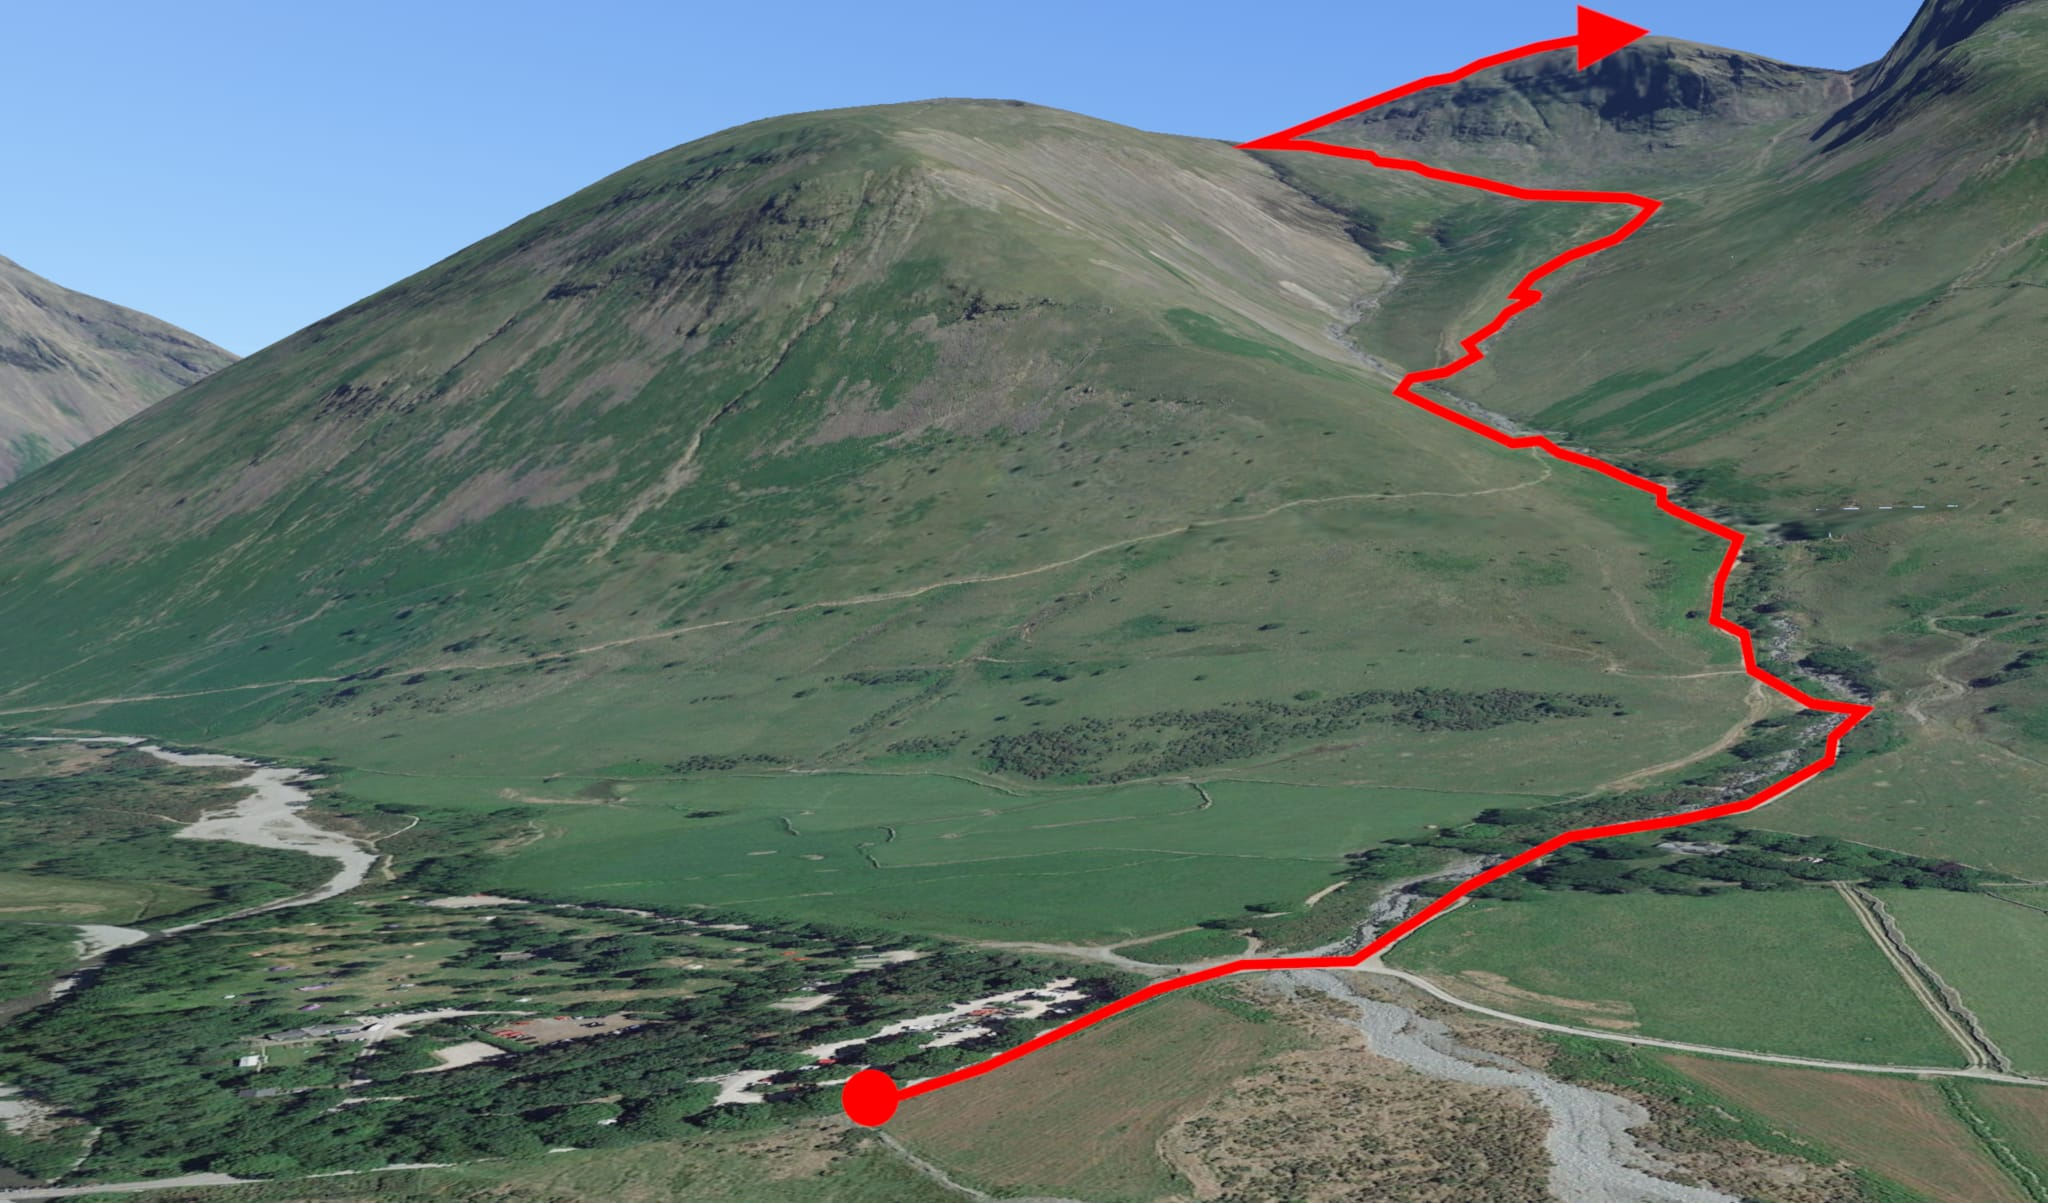 A 3D satellite image showing the route to the summit of Scafell Pike from the National Trust Wasdale Head campsite.